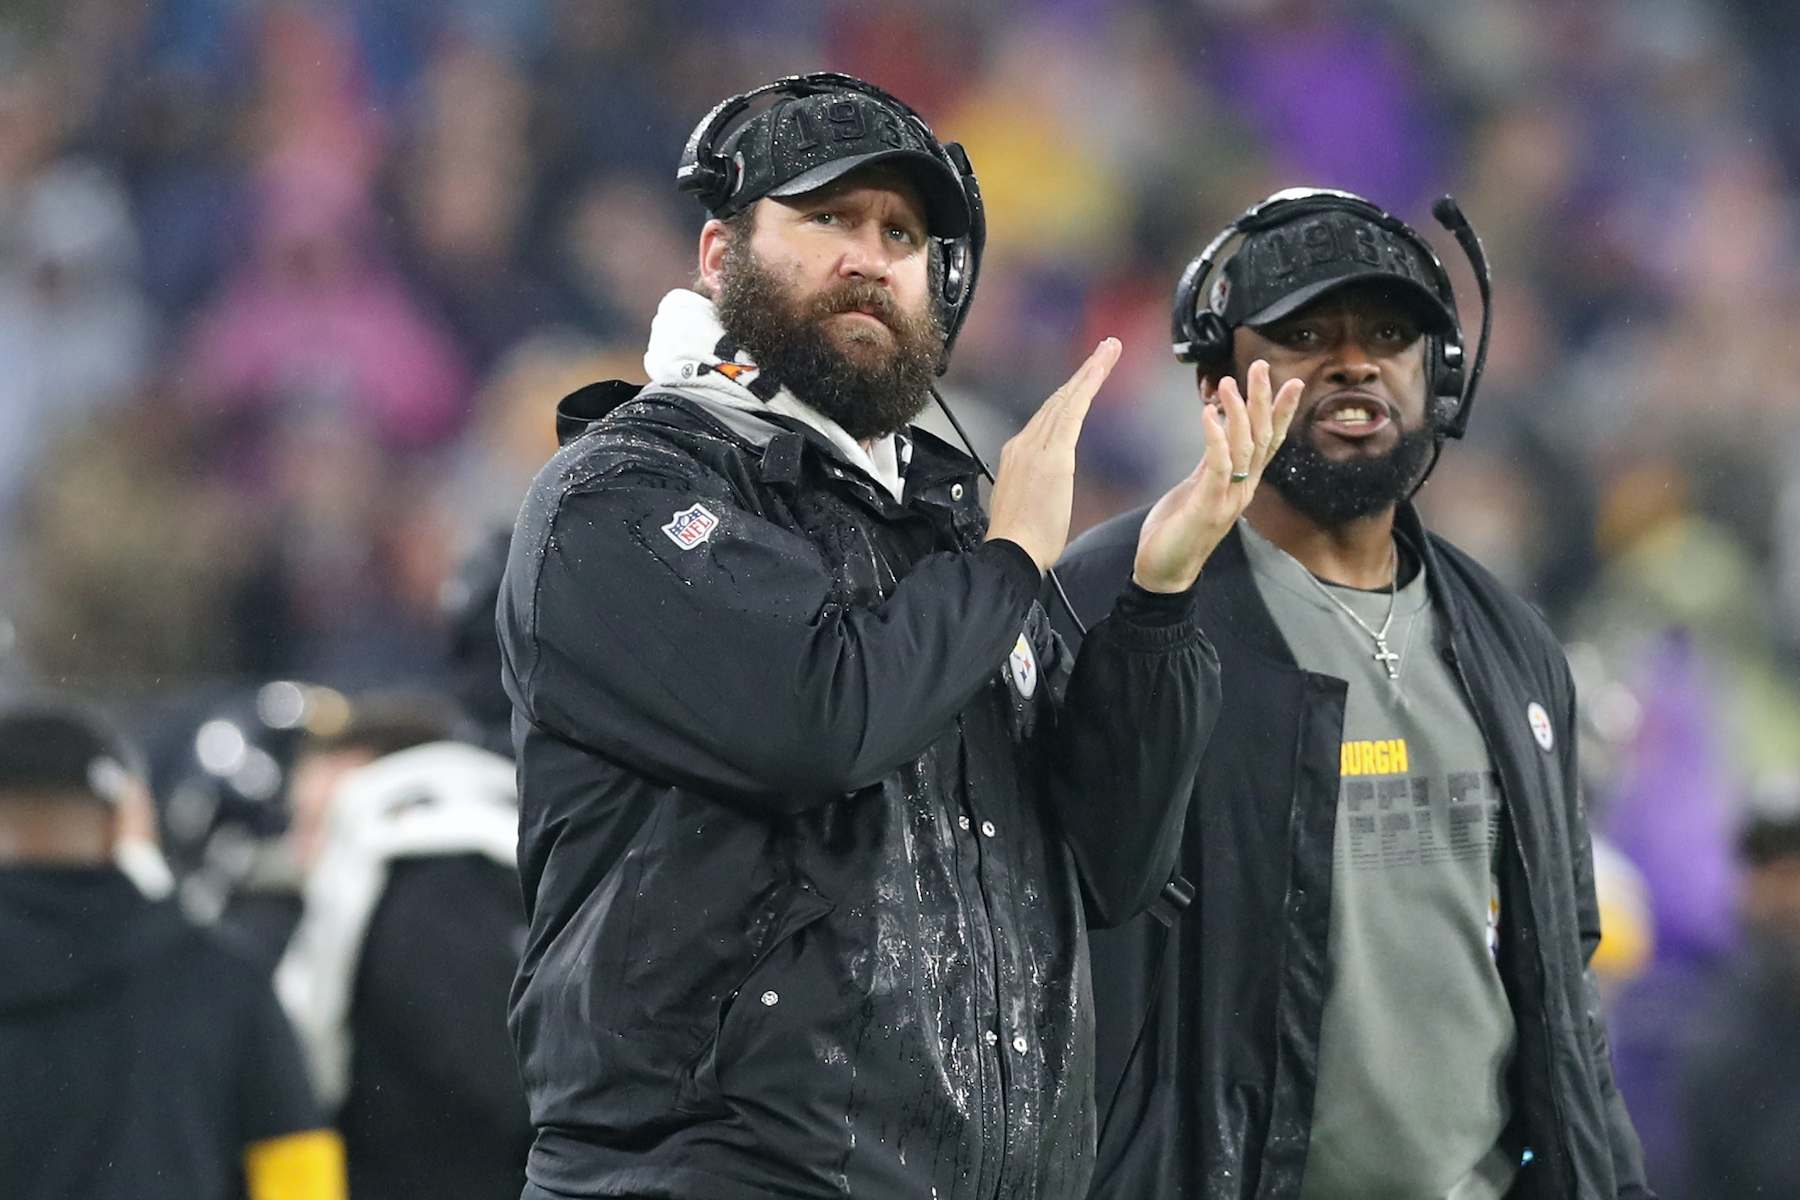 Quarterback Ben Roethlisberger and head coach Mike Tomlin of the Pittsburgh Steelers